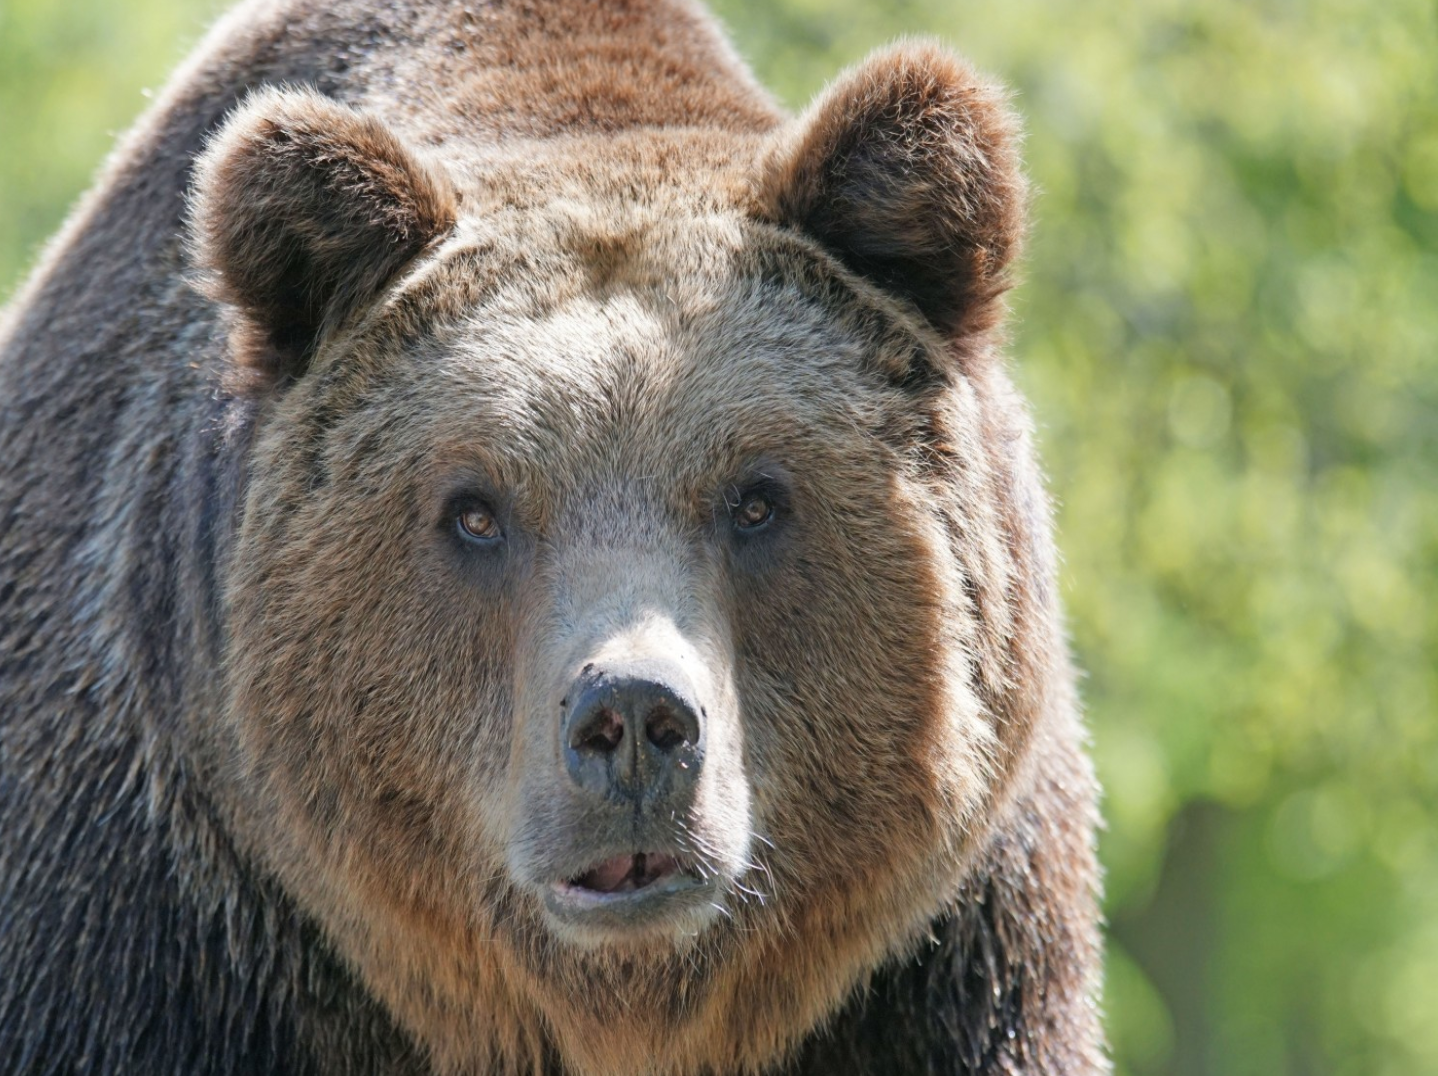 BEAR!!! One of our eco warriors, Bianca, went to see Brown Bears in Romania. Read about here story and see the experience here: